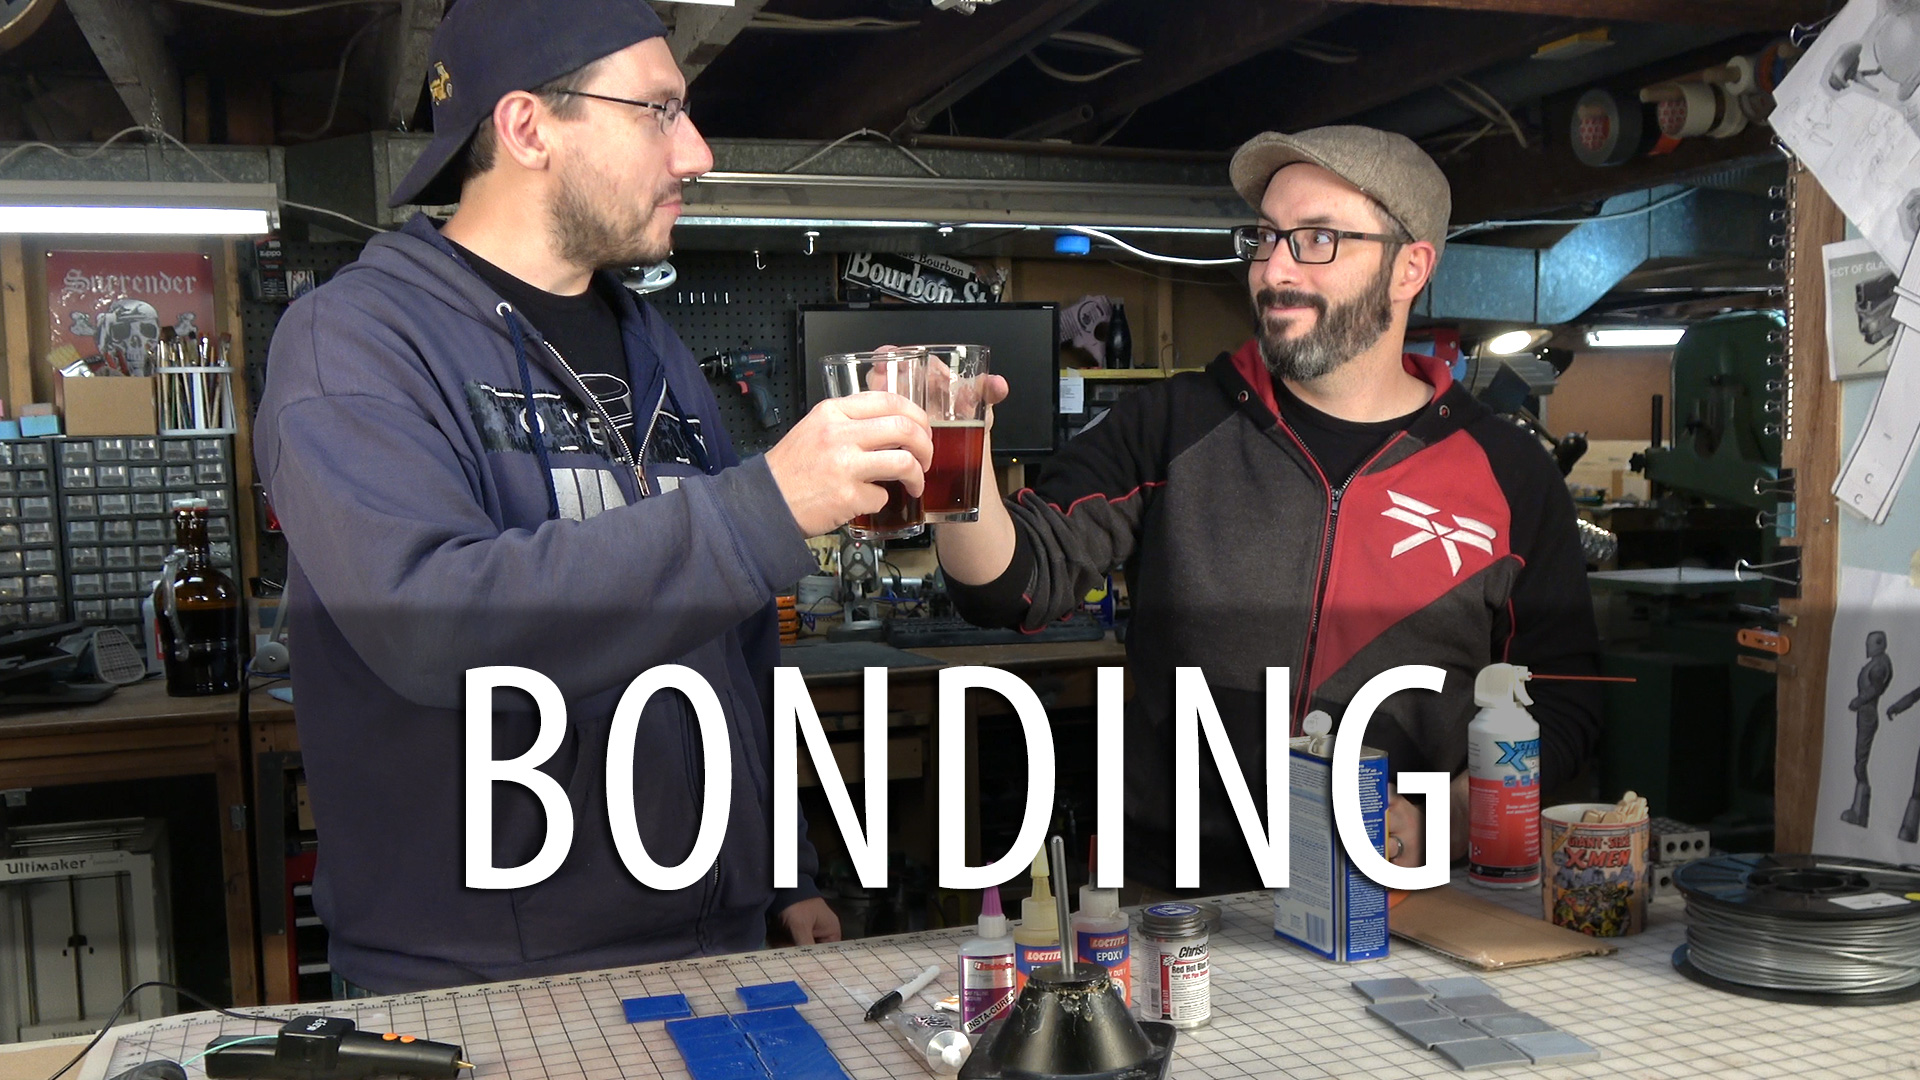 Testing 3D Print Bonding Methods with Punished Props (Glue/Epoxy/Welding)